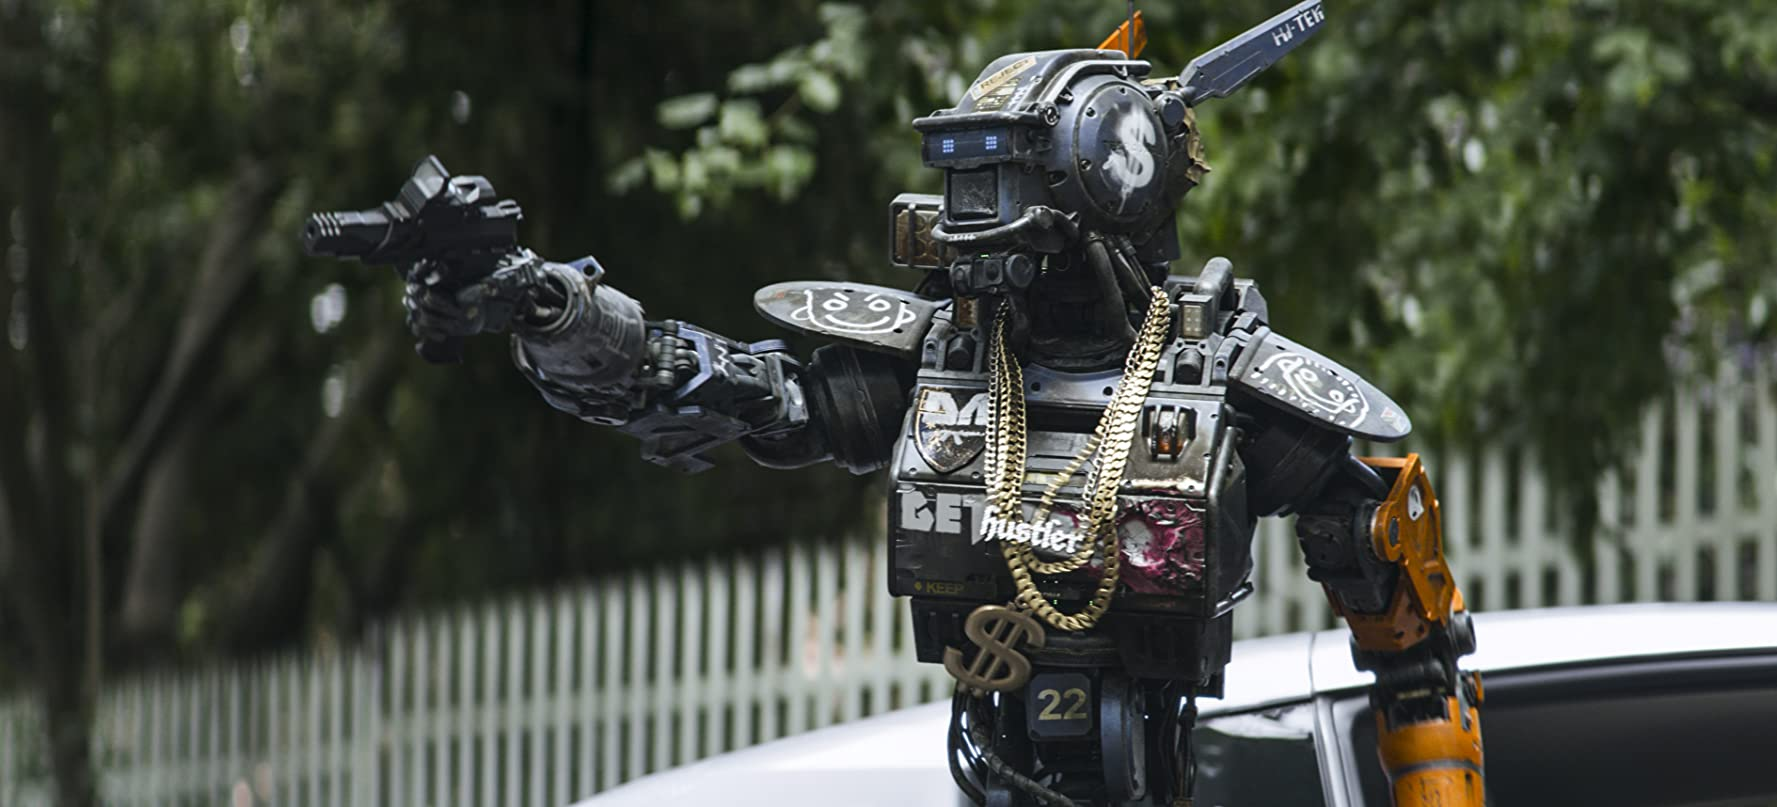 Sharlto Copley in Chappie (2015)